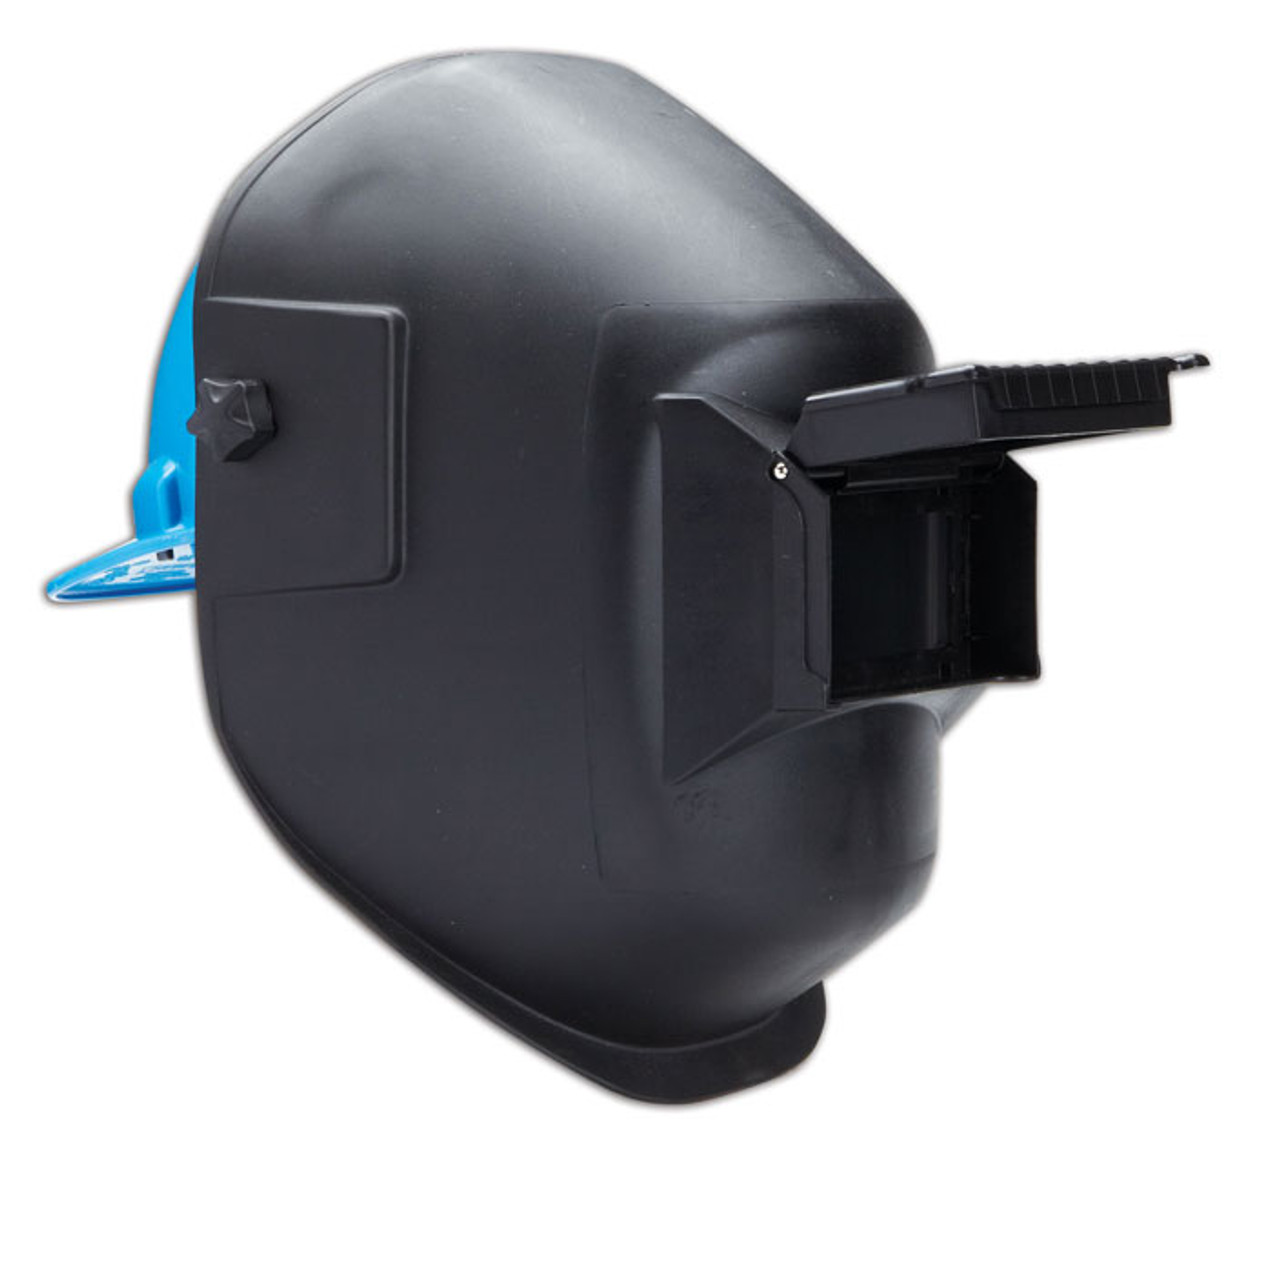 2 x 4.25 Fixed Front Complete with Polycarbonate Shade 10 Filter Plate and Clear Cover Plate Dynamic Safety EP101 Super-Tuff Black Basic Thermoplastic Welding Helmet